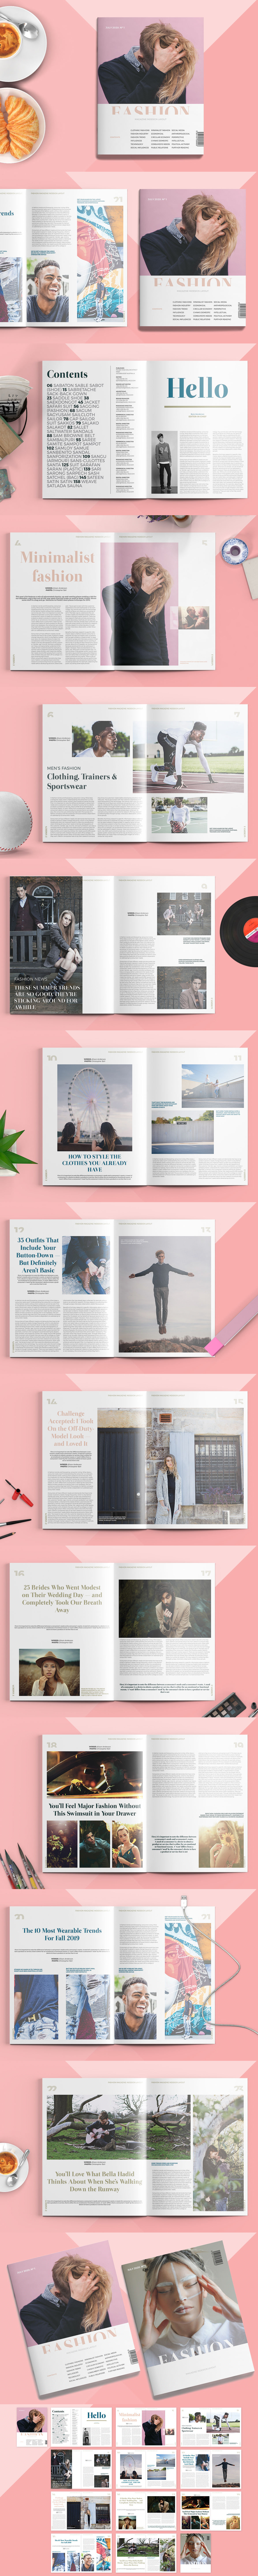 Fashion Magazine Template InDesign INDD - 24 Pages, US letter + A4 ...